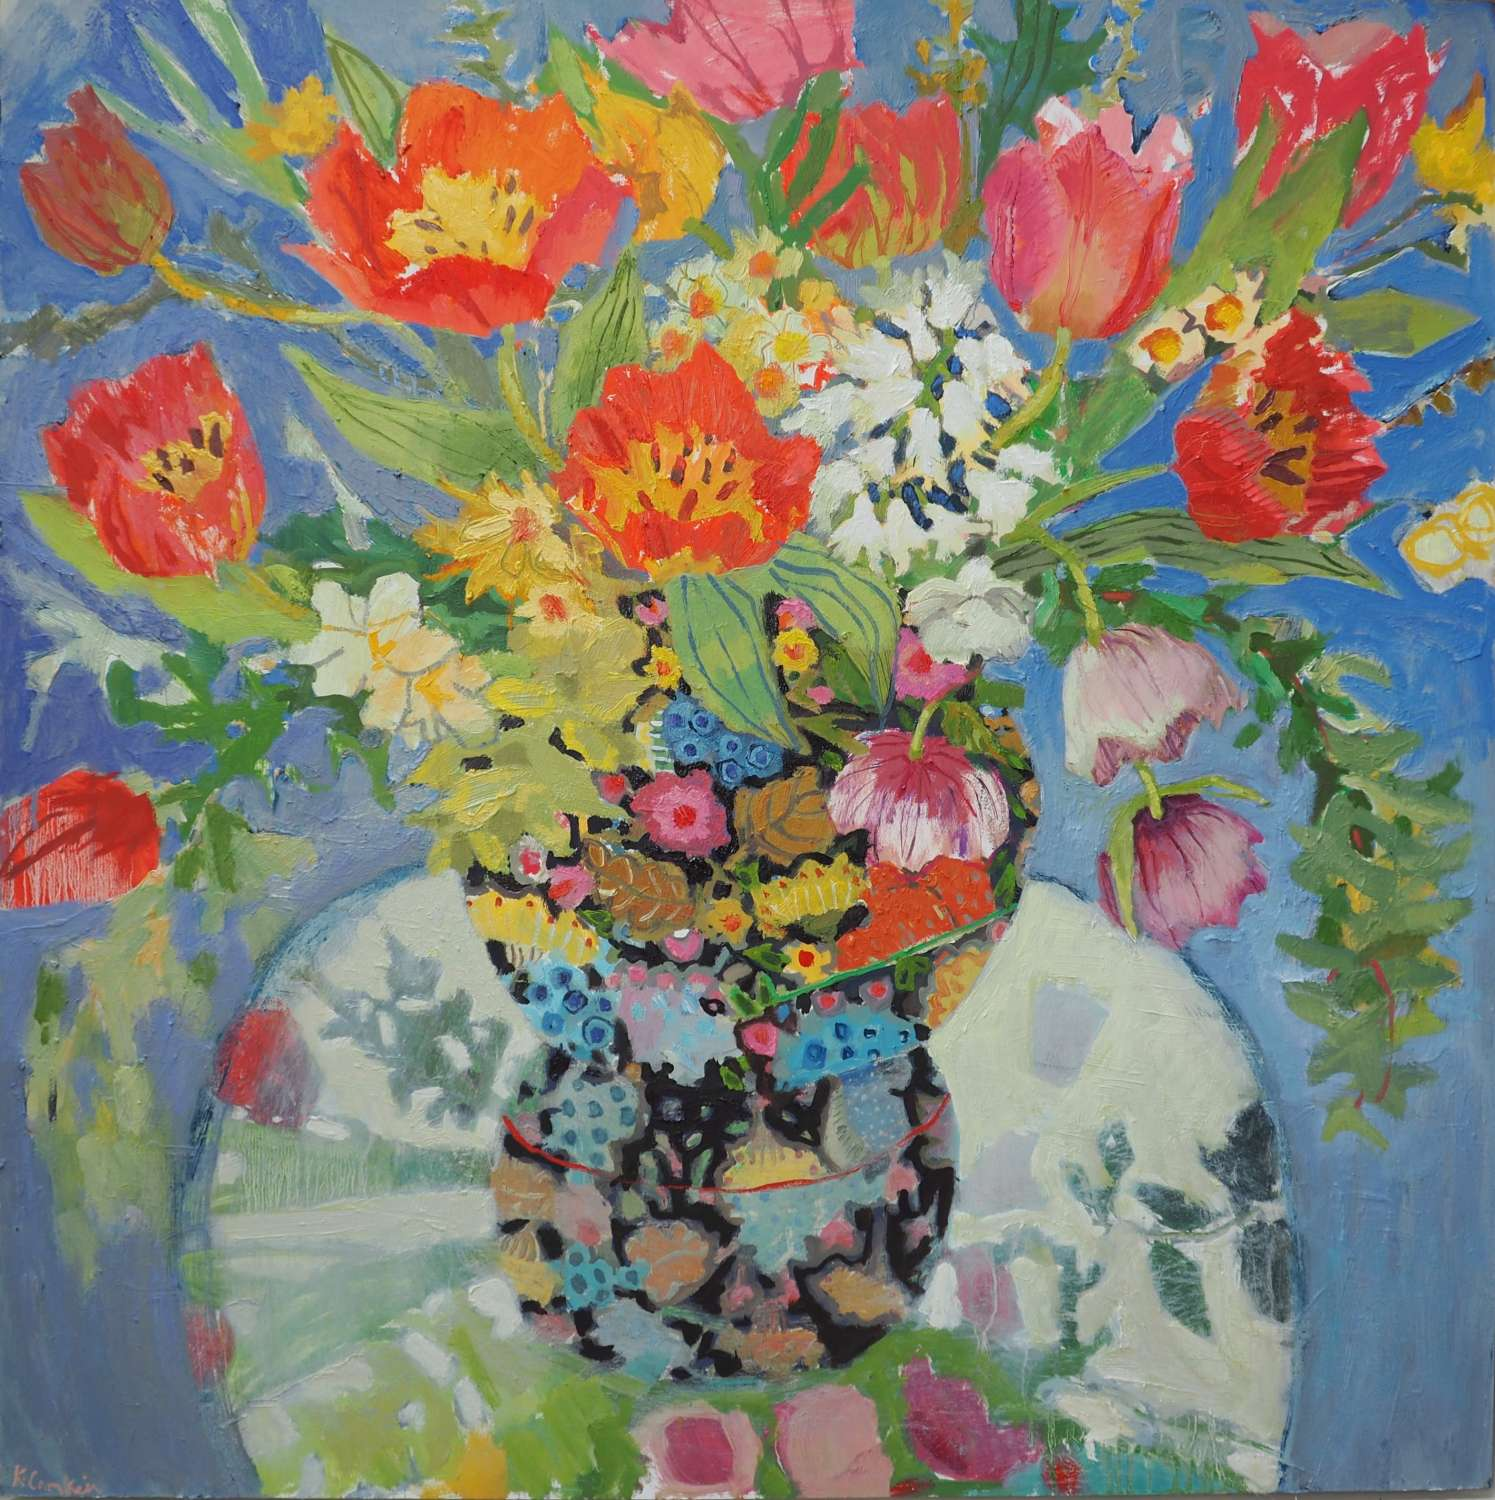 Summer Exhibition: Painting and Sculpture,  30 April - 26 June